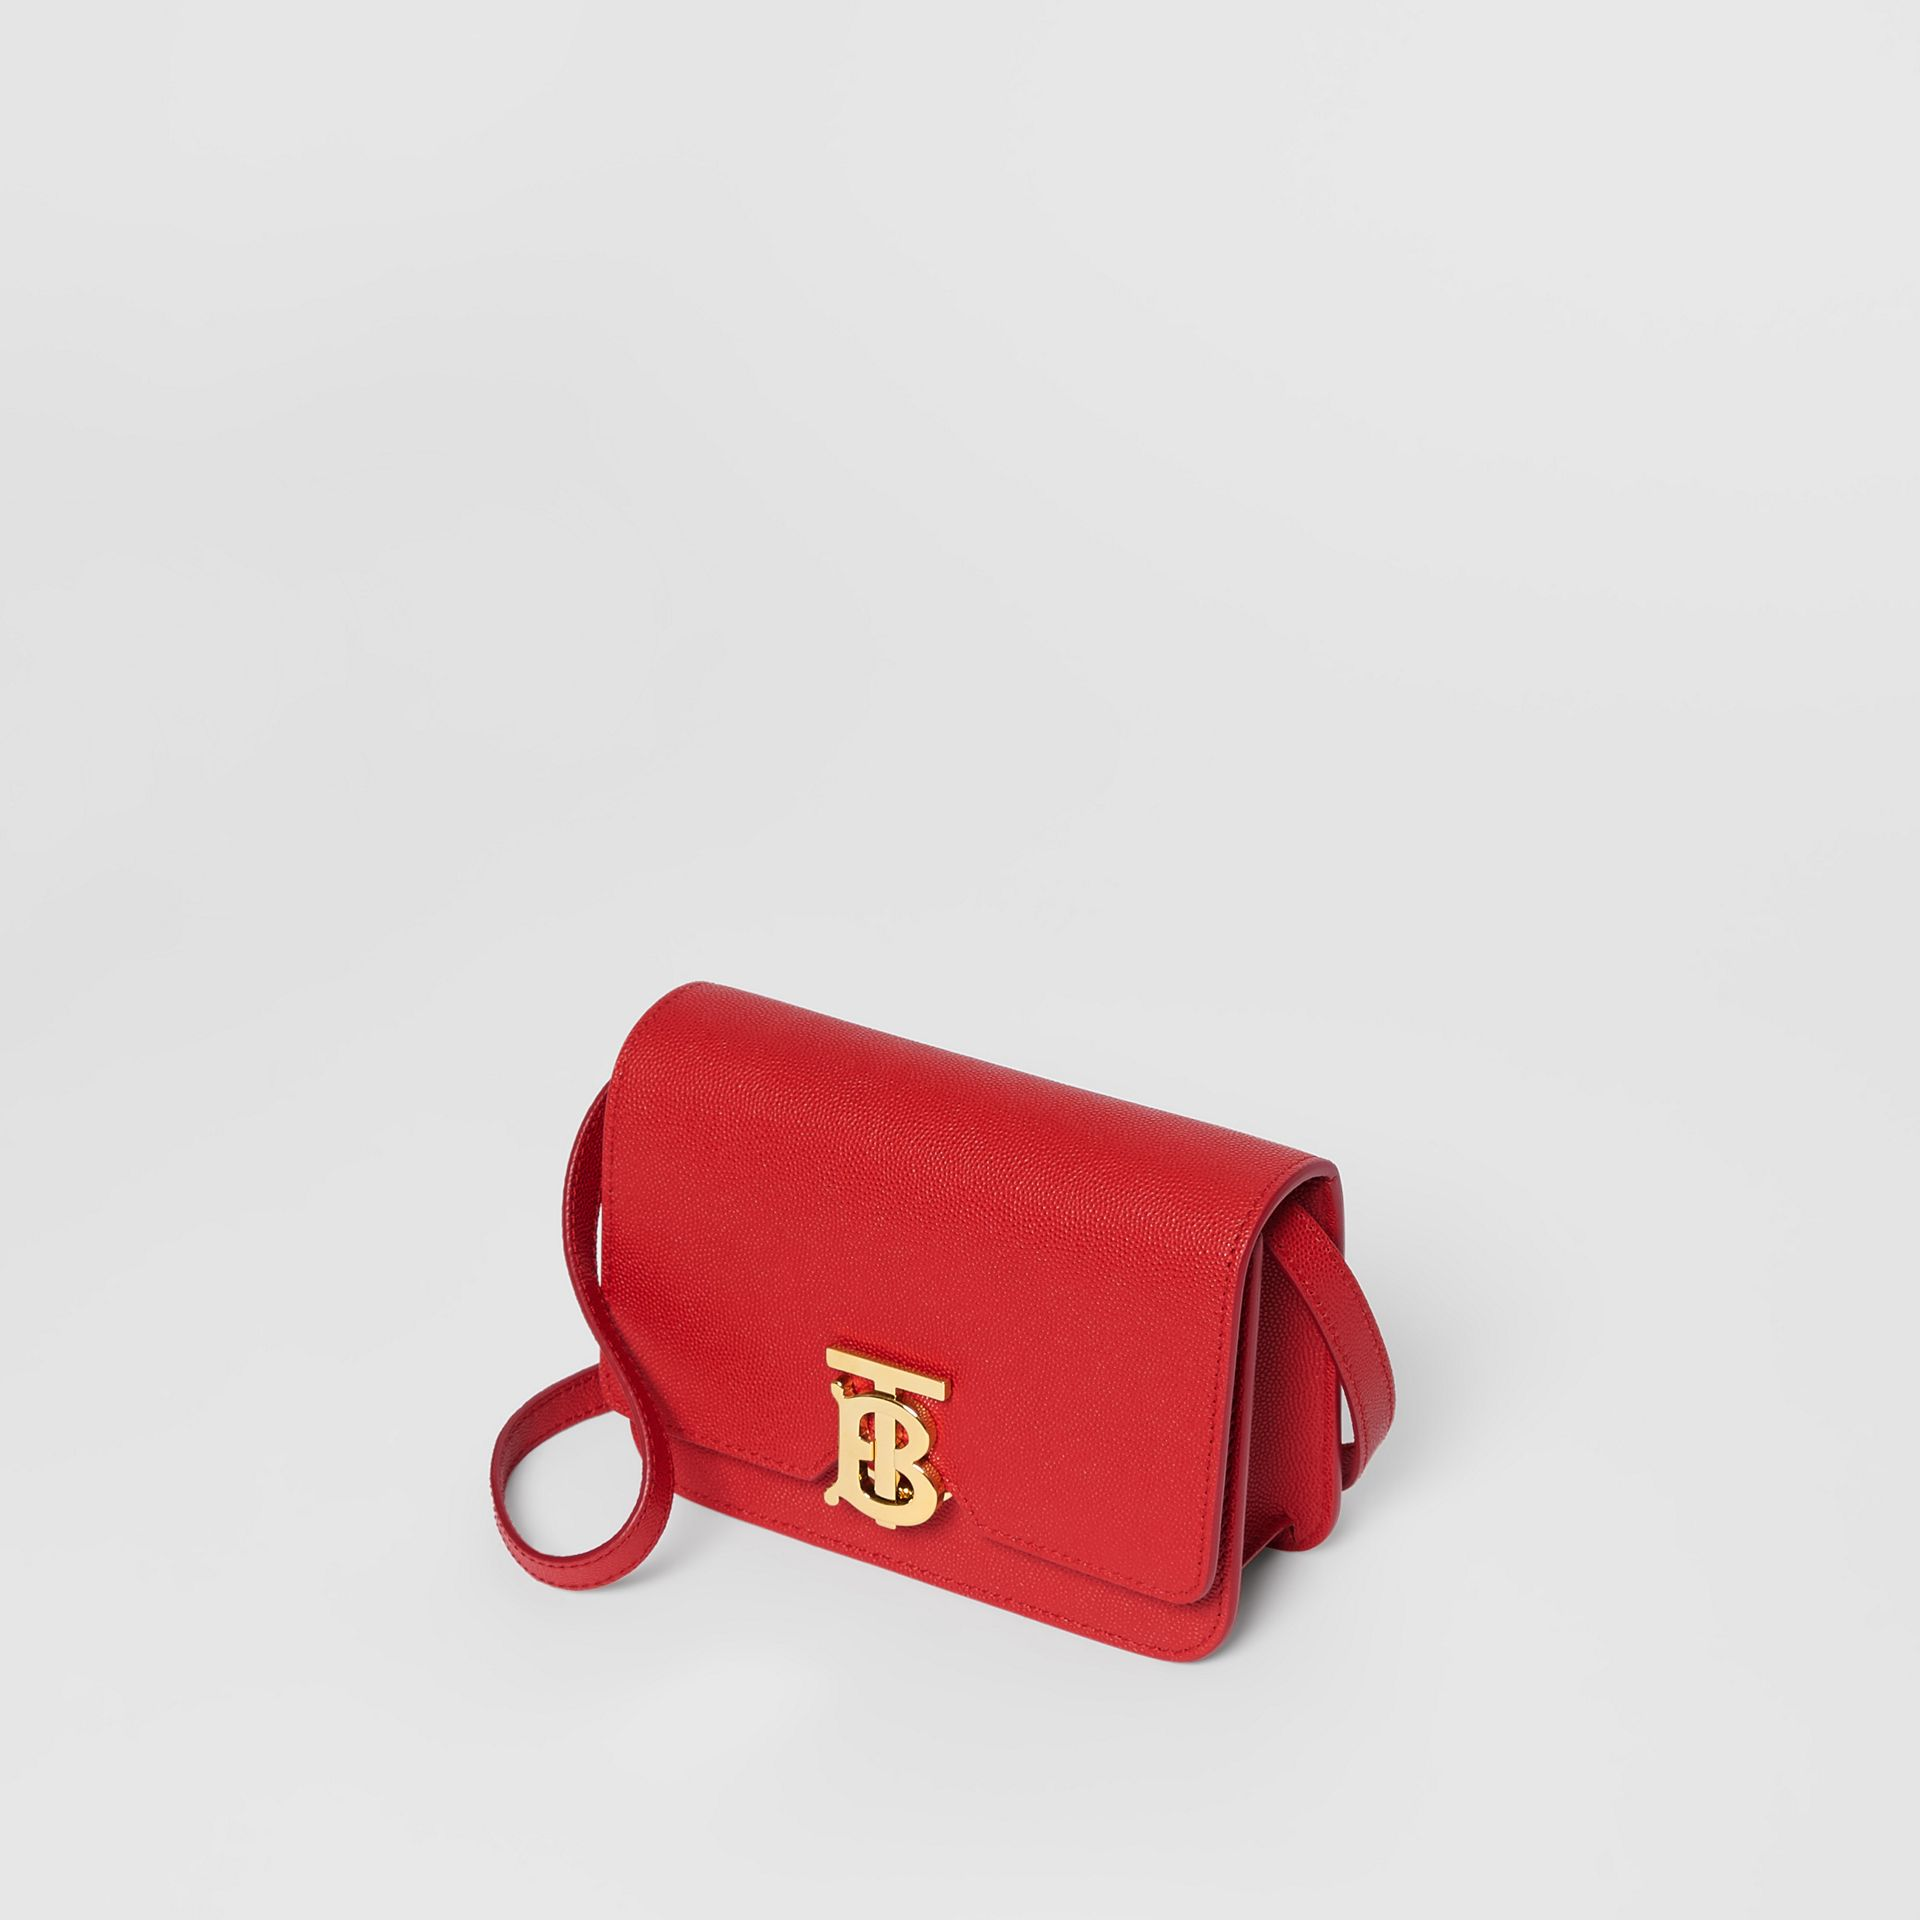 Mini Grainy Leather TB Bag in Bright Red - Women | Burberry Canada - gallery image 3